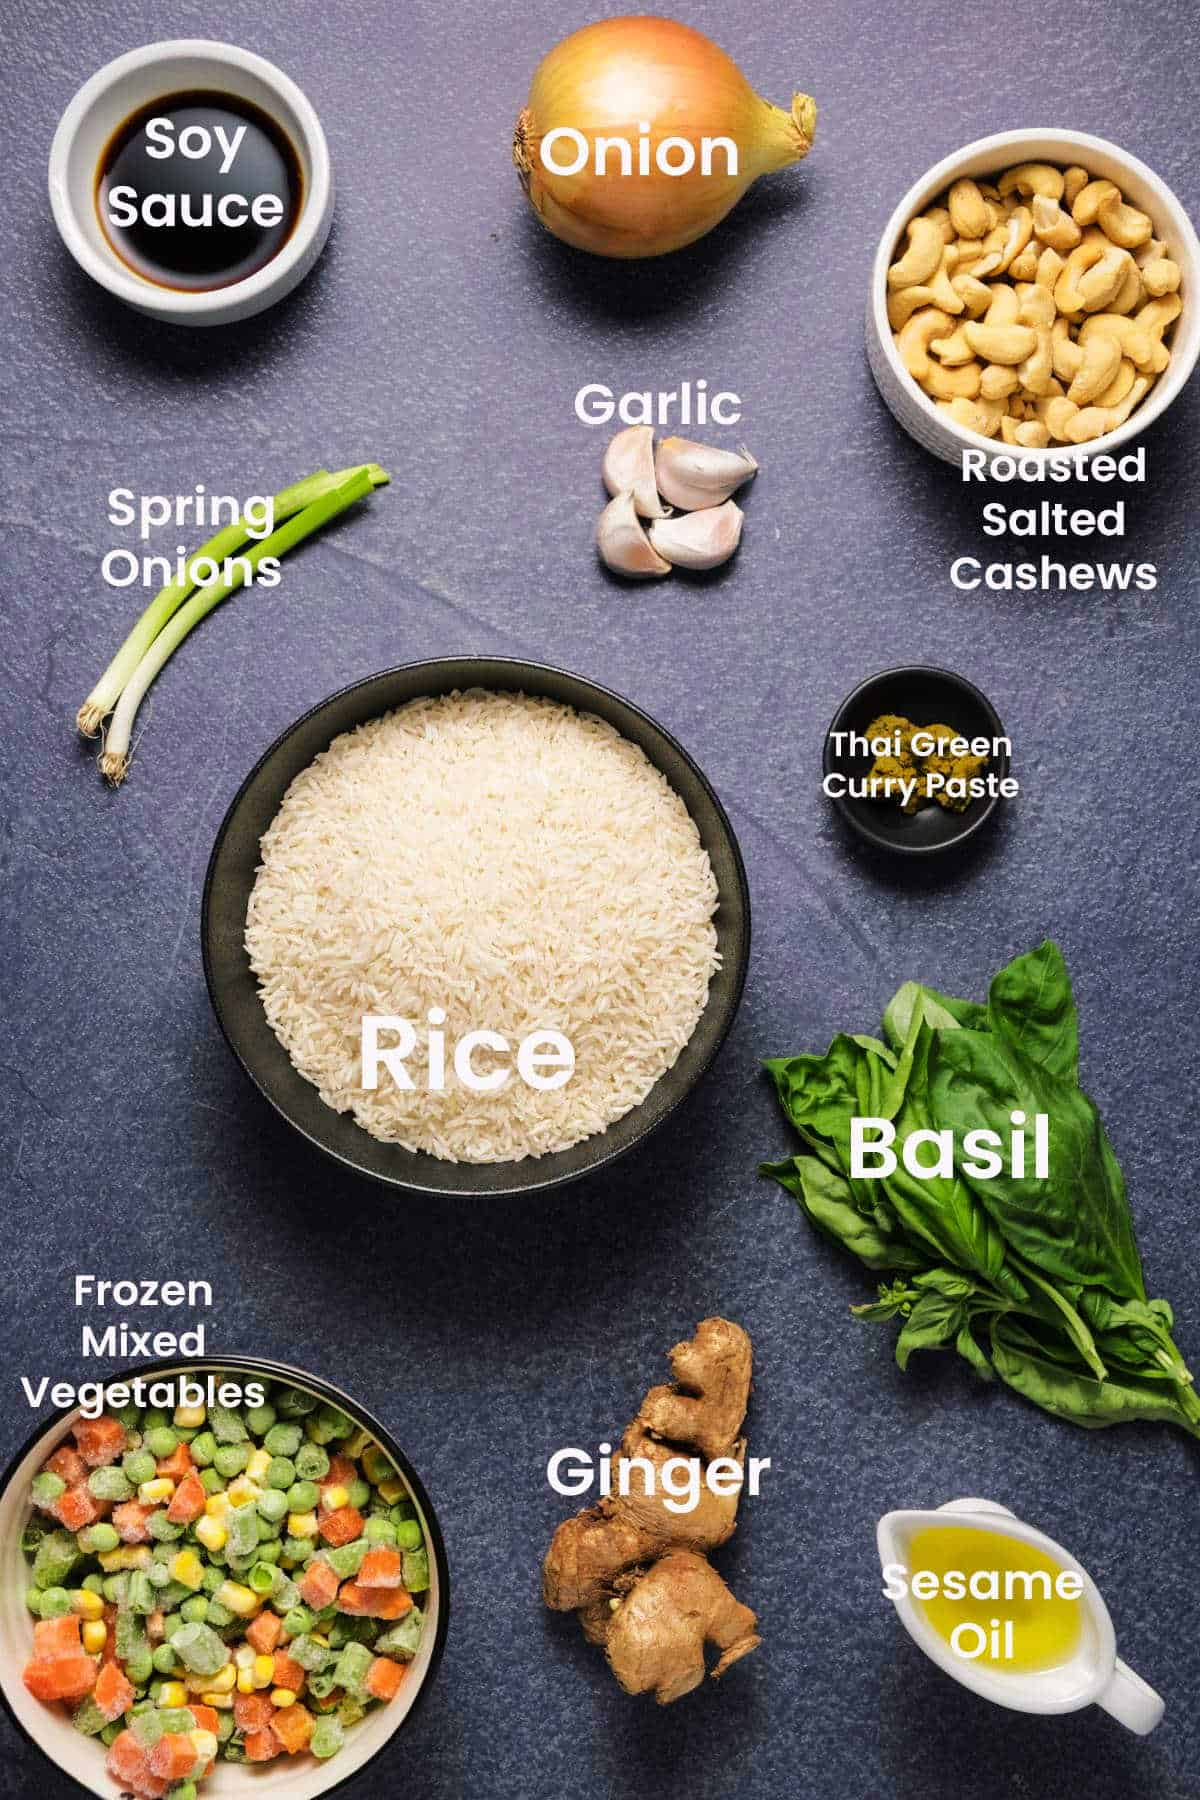 Photo of the ingredients needed to make vegan fried rice.